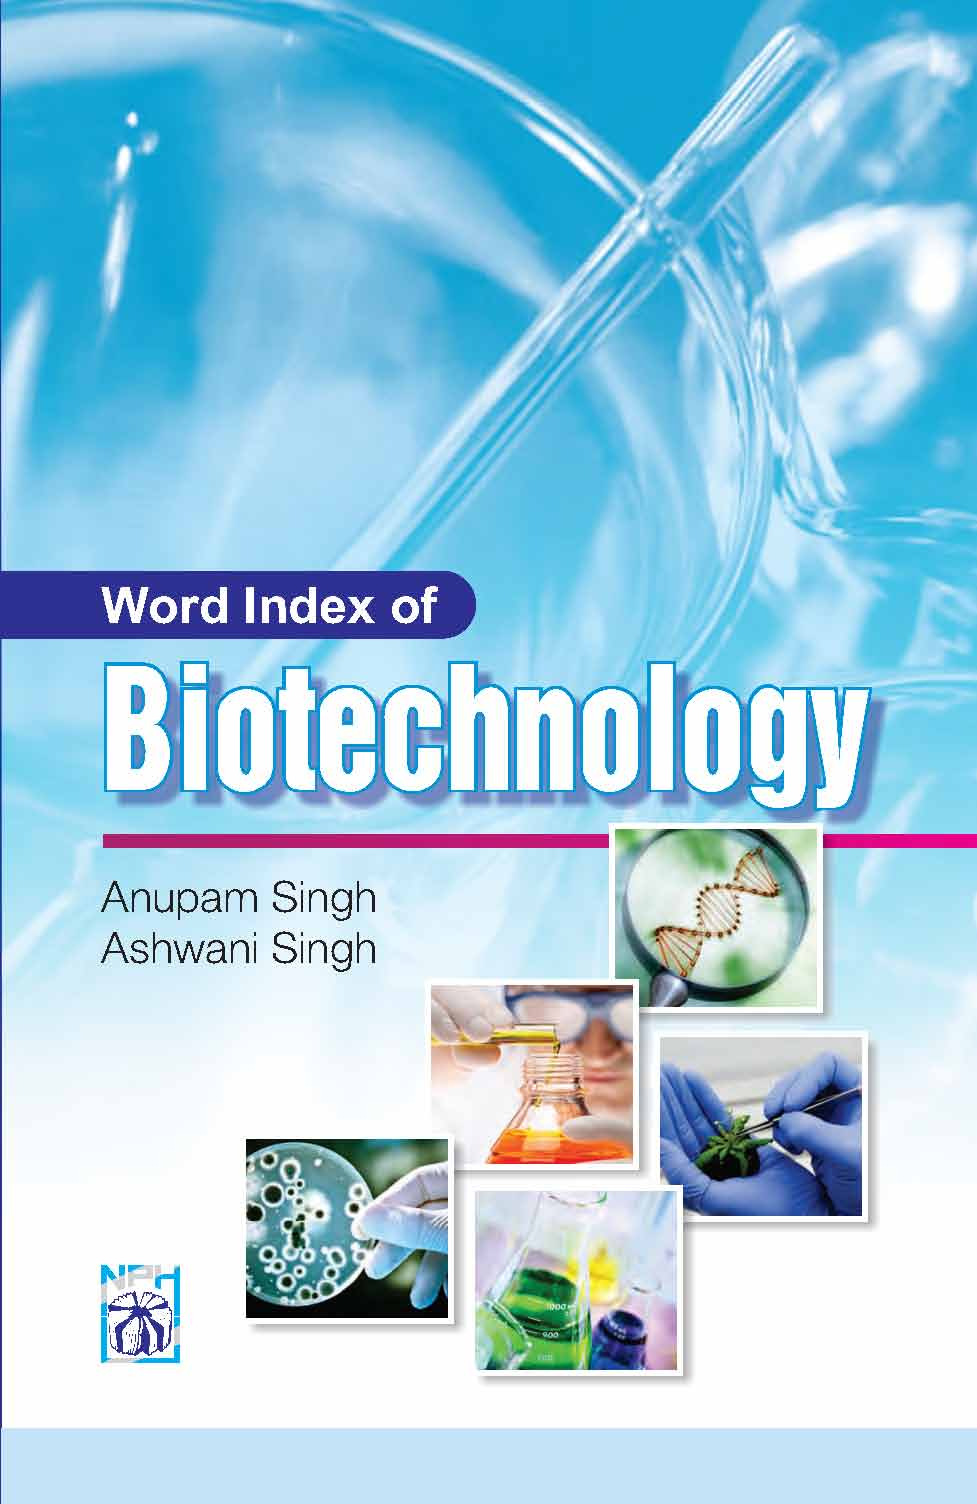 Word Index of Biotechnology